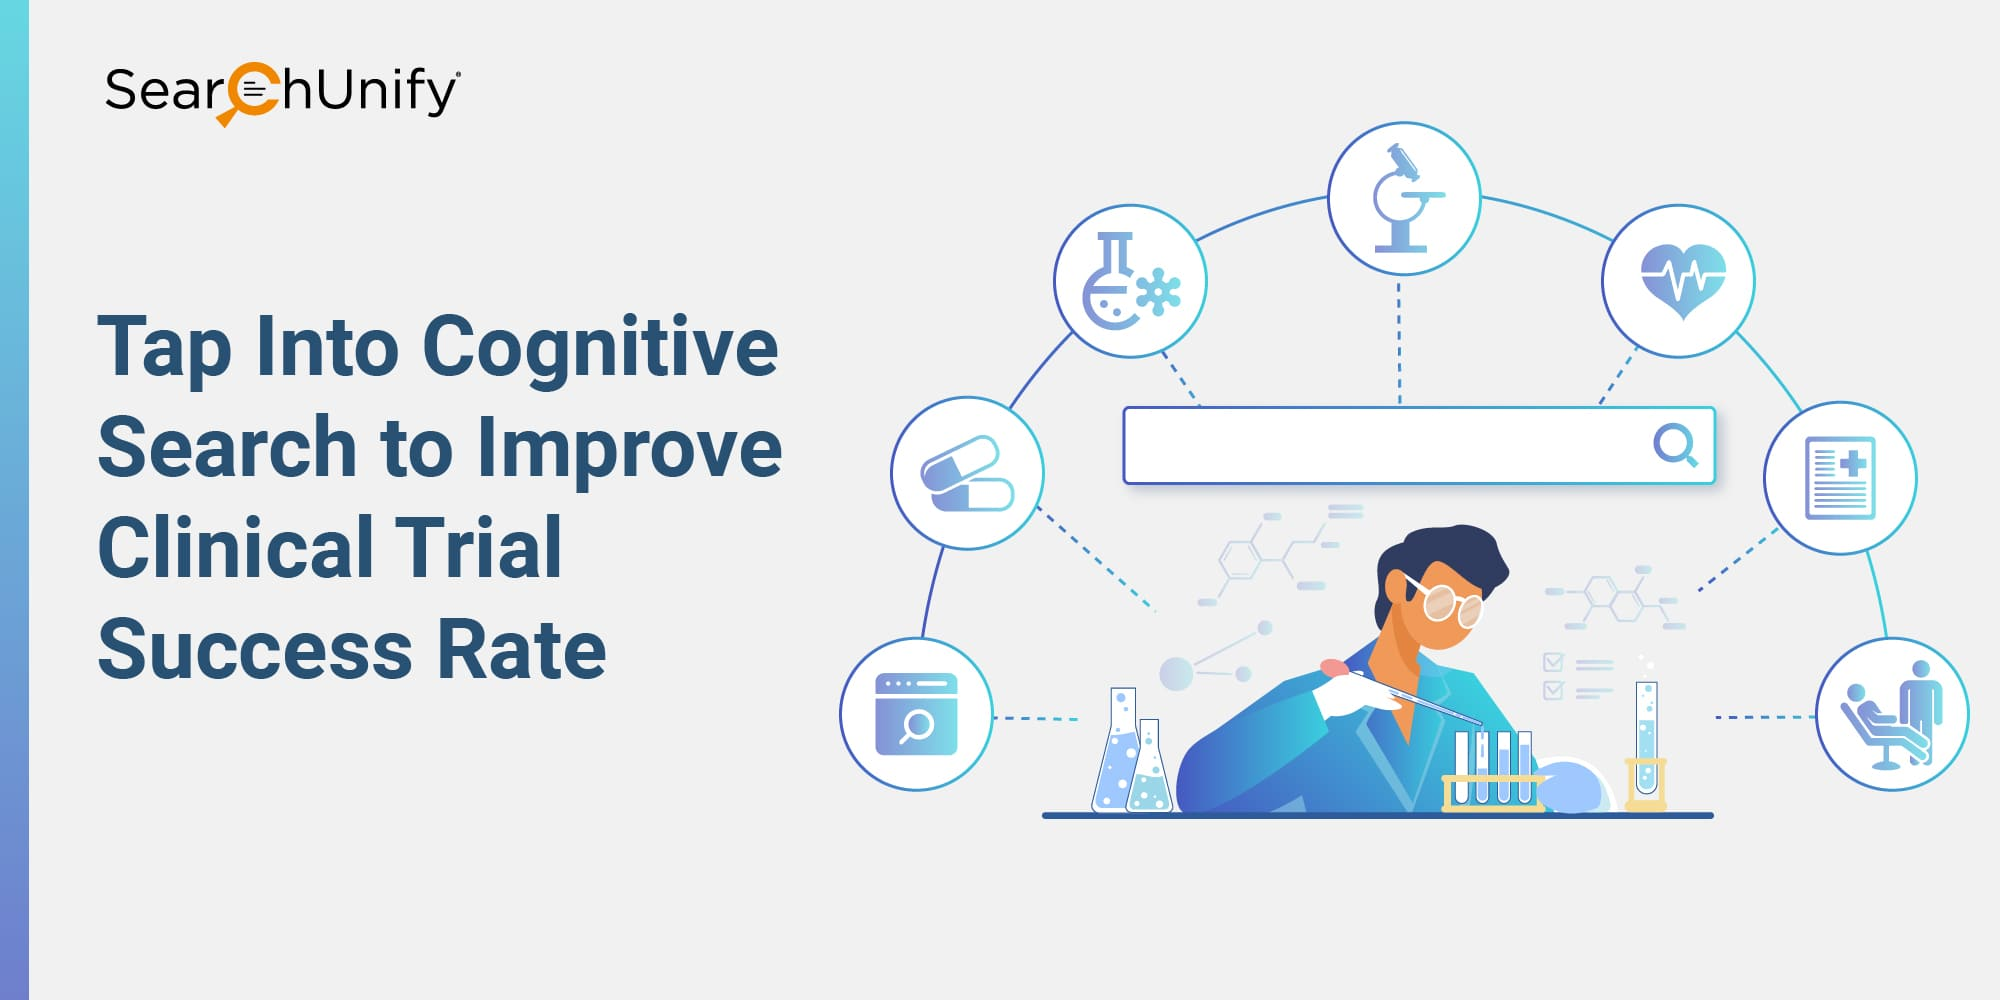 Tap Into Cognitive Search to Improve Clinical Trial Success Rate